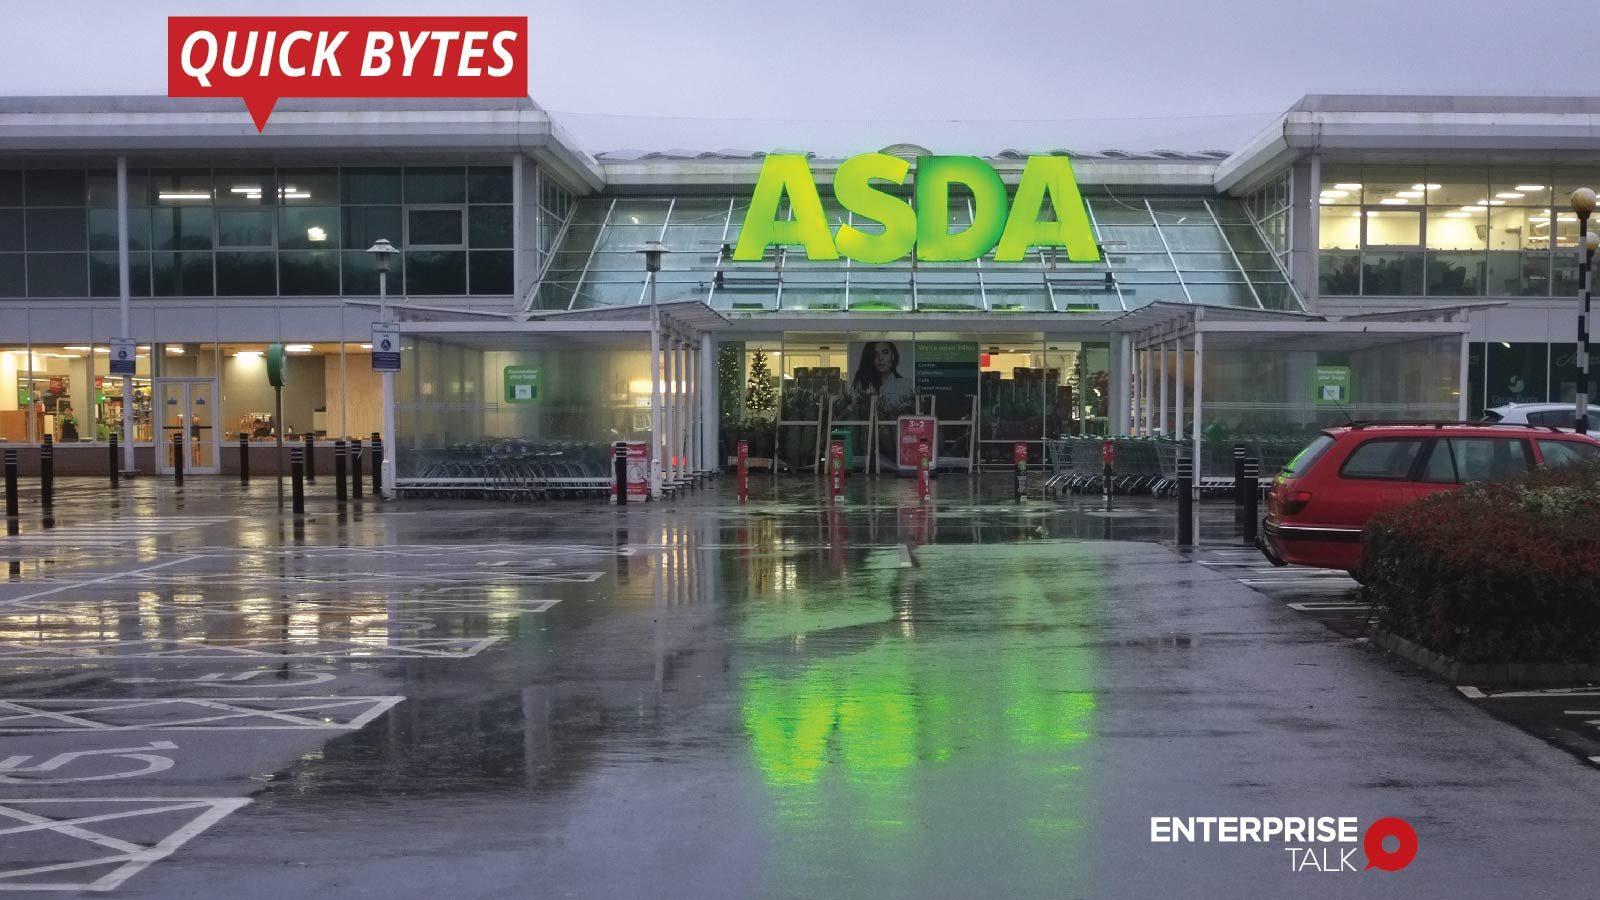 Up-for-sale British Retail Giant Asda Targets Online Expansion